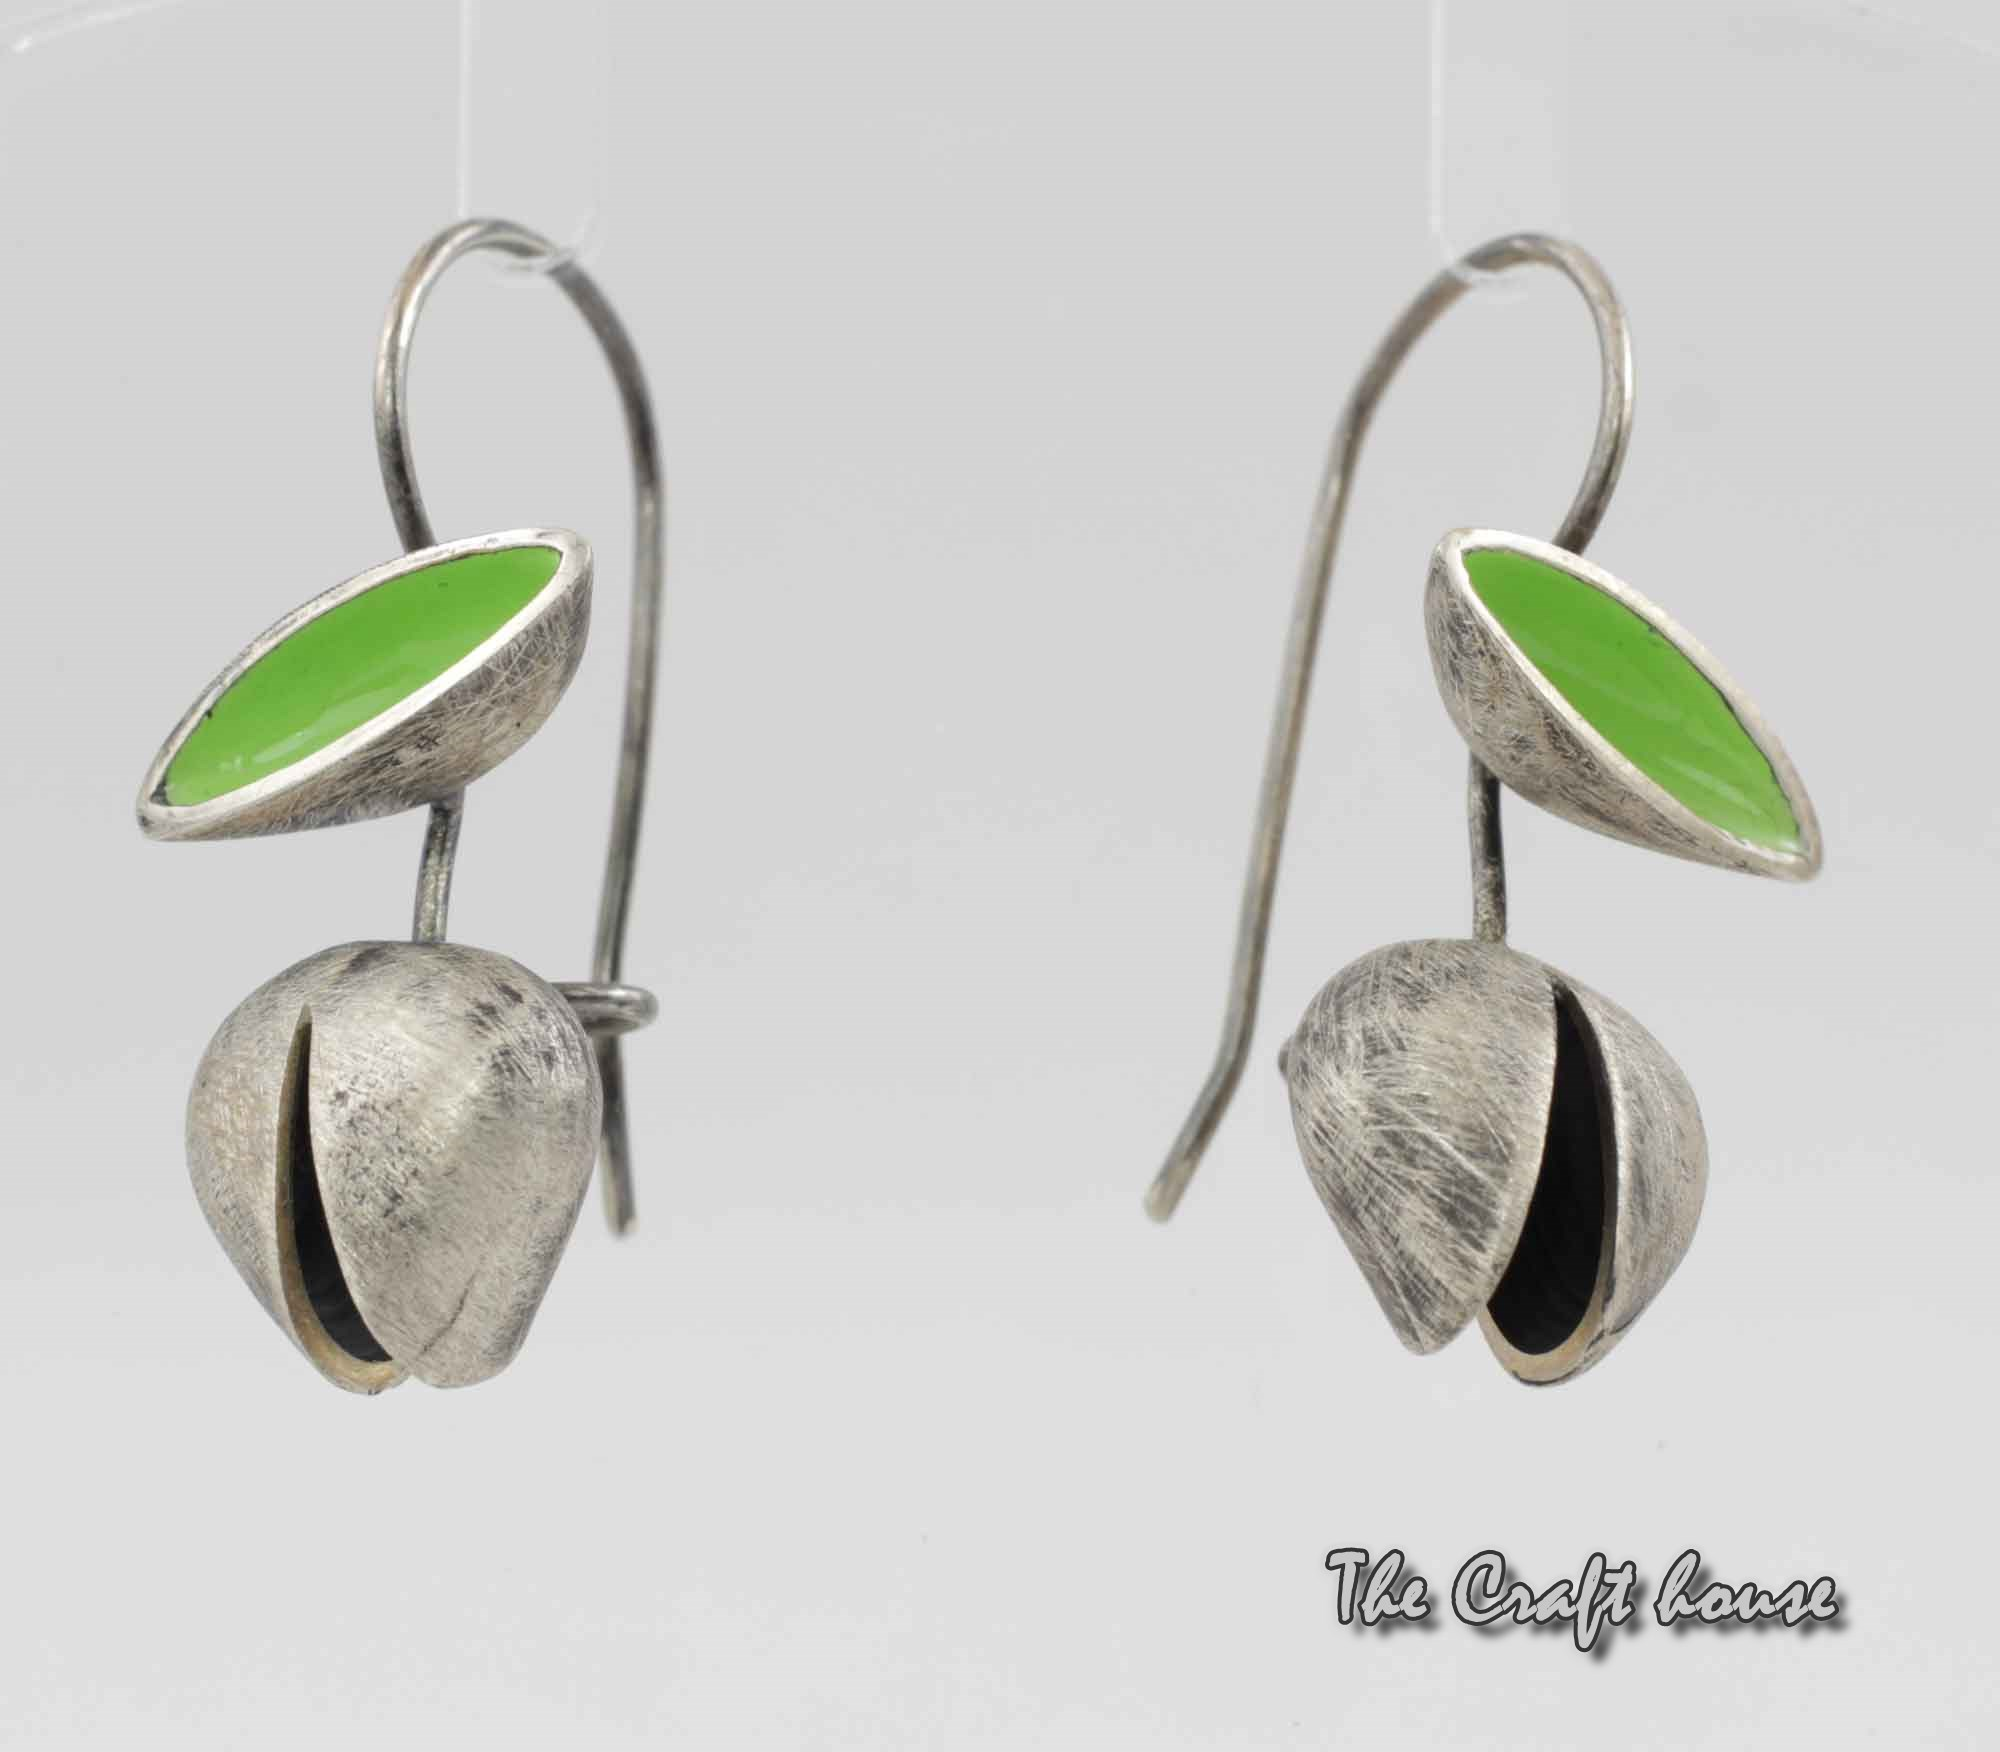 Silver earrings with green enamel